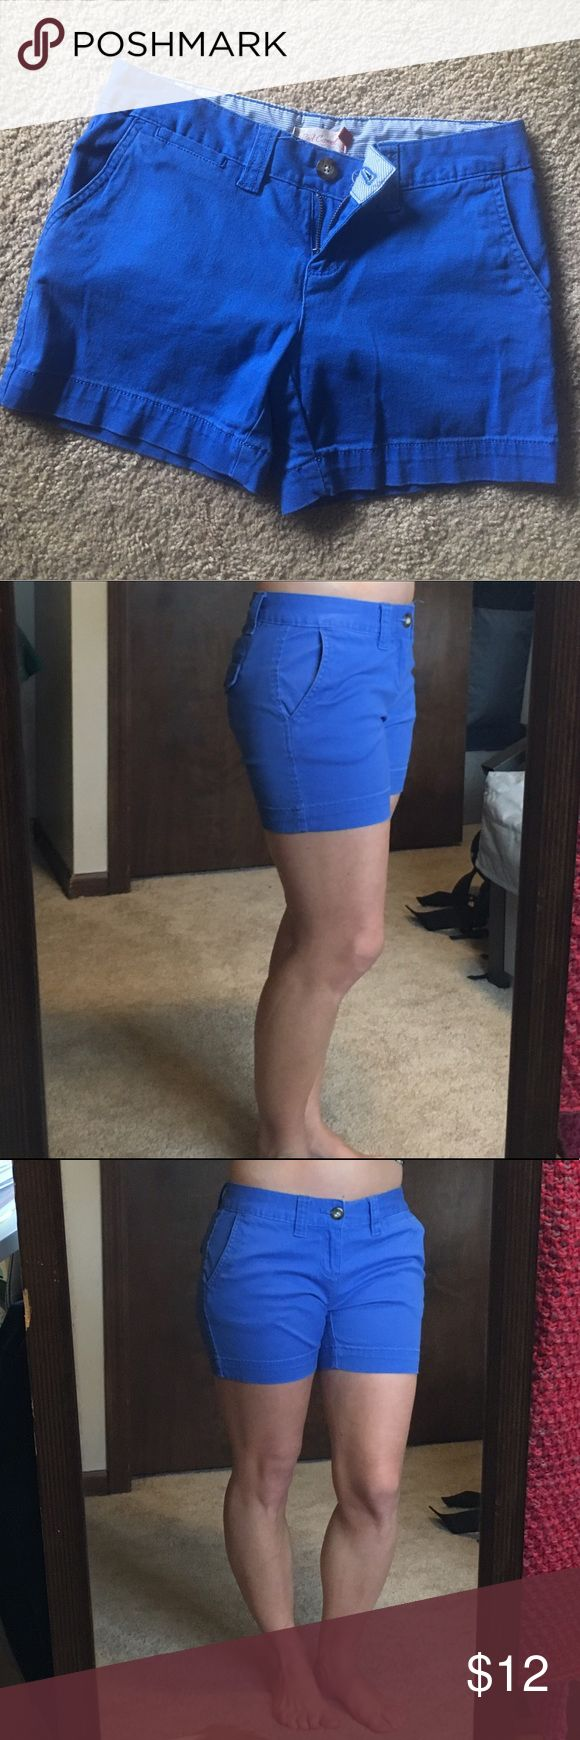 Royal Blue Midi Shorts, size 3 Excellent condition, no major signs of wear.  The pictures show the fit pretty well but feel free to ask questions :) Red Camel Shorts